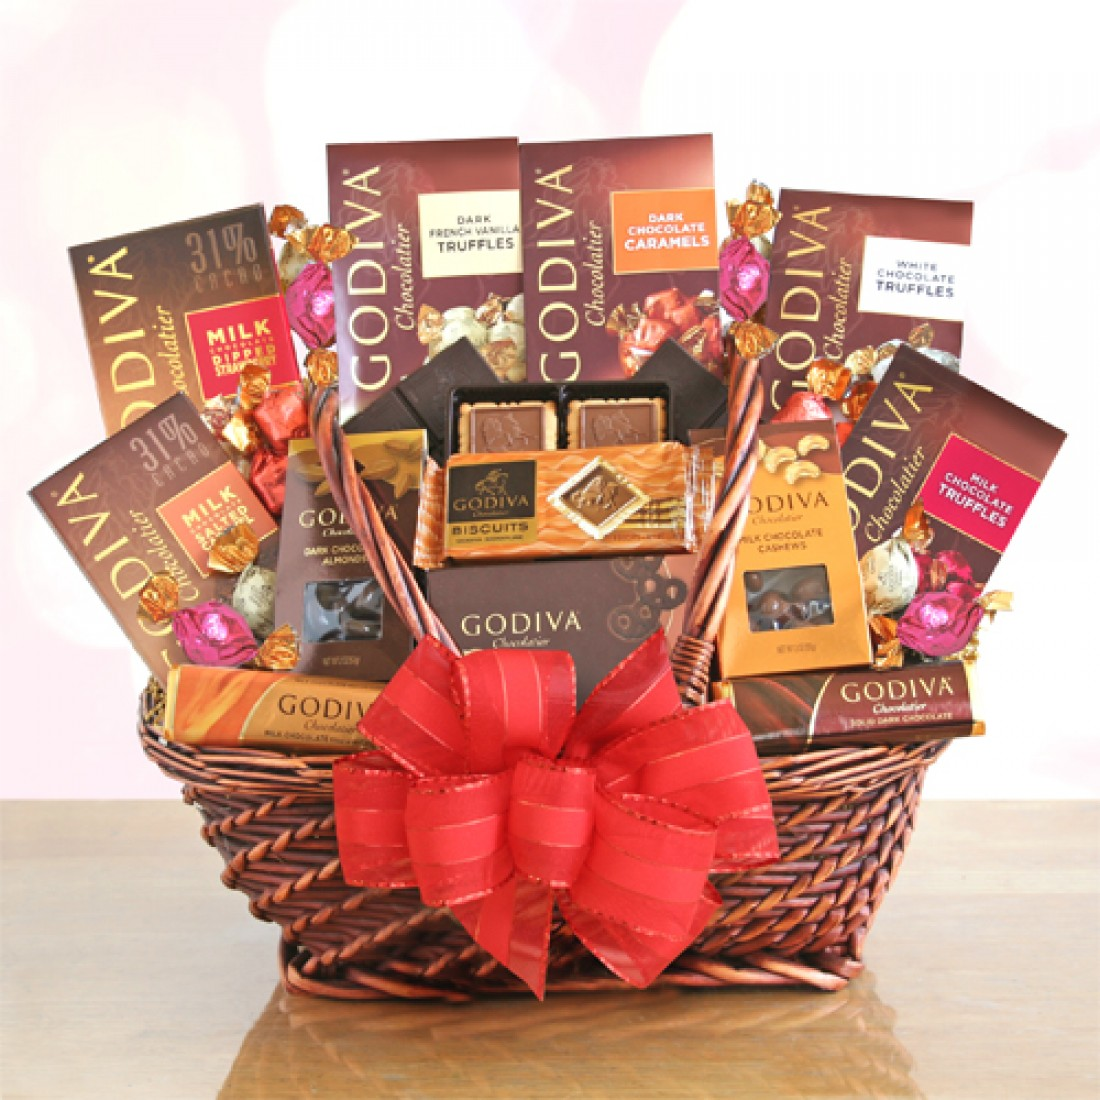 Chocolate Gift Baskets: X Drag To View Zoom In Zoom Out Reset